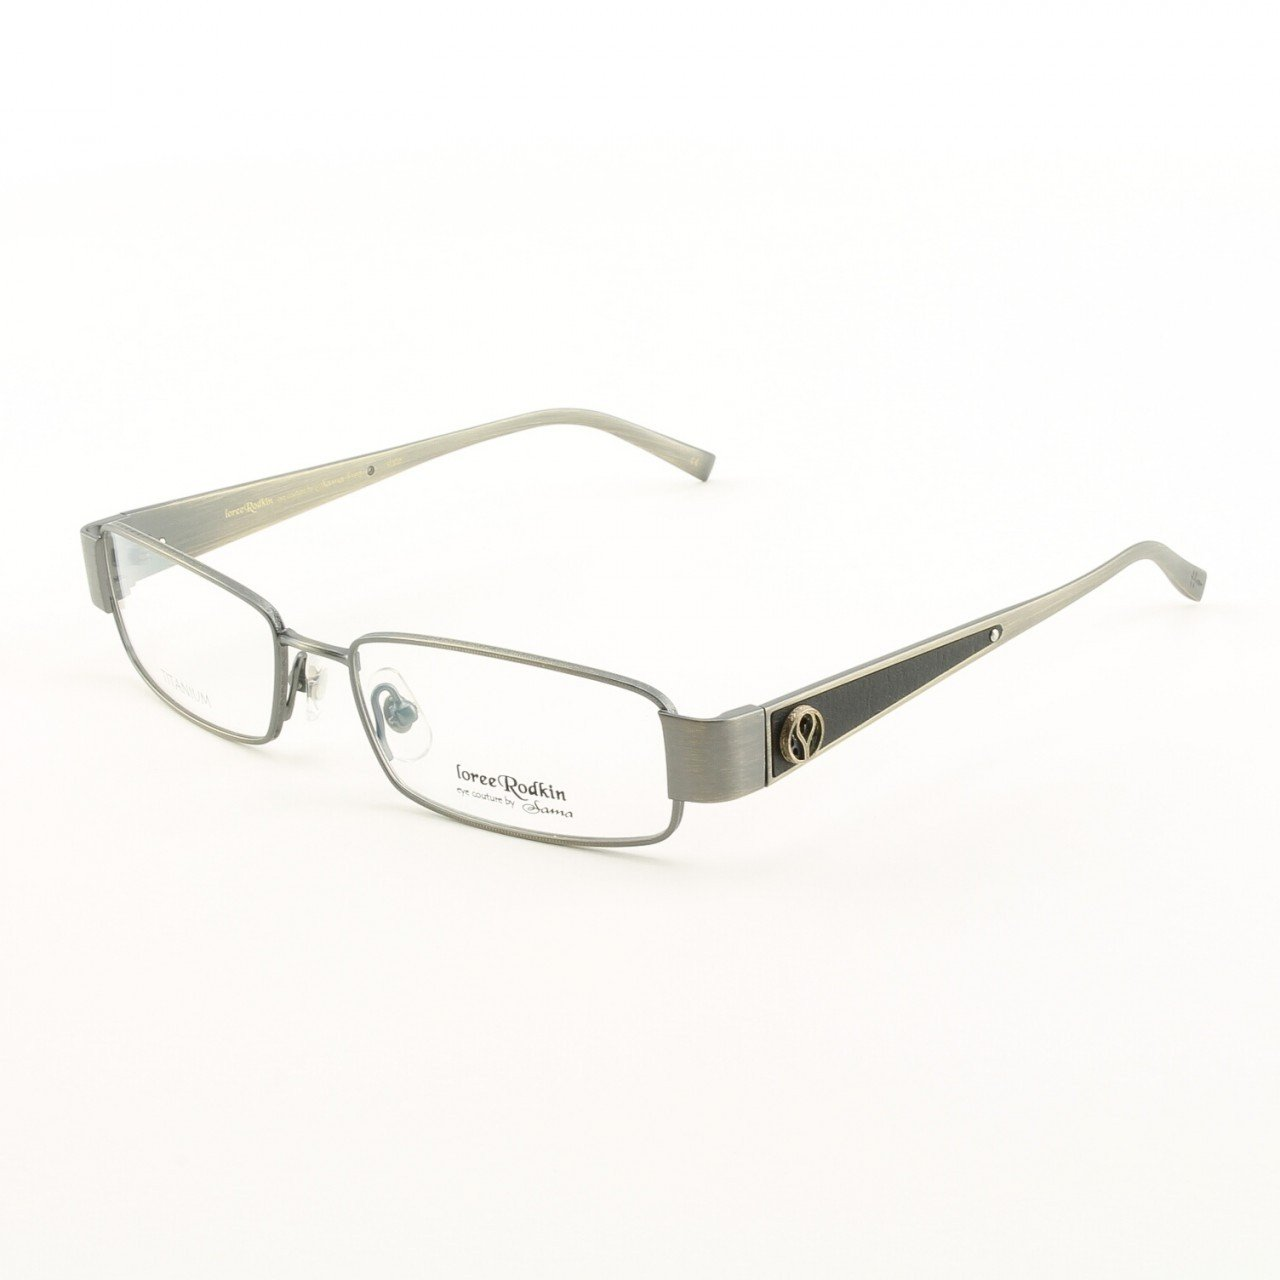 Loree Rodkin Fred Eyeglasses by Sama Col. Slate with Clear Lenses, Leather and Sterling Silver